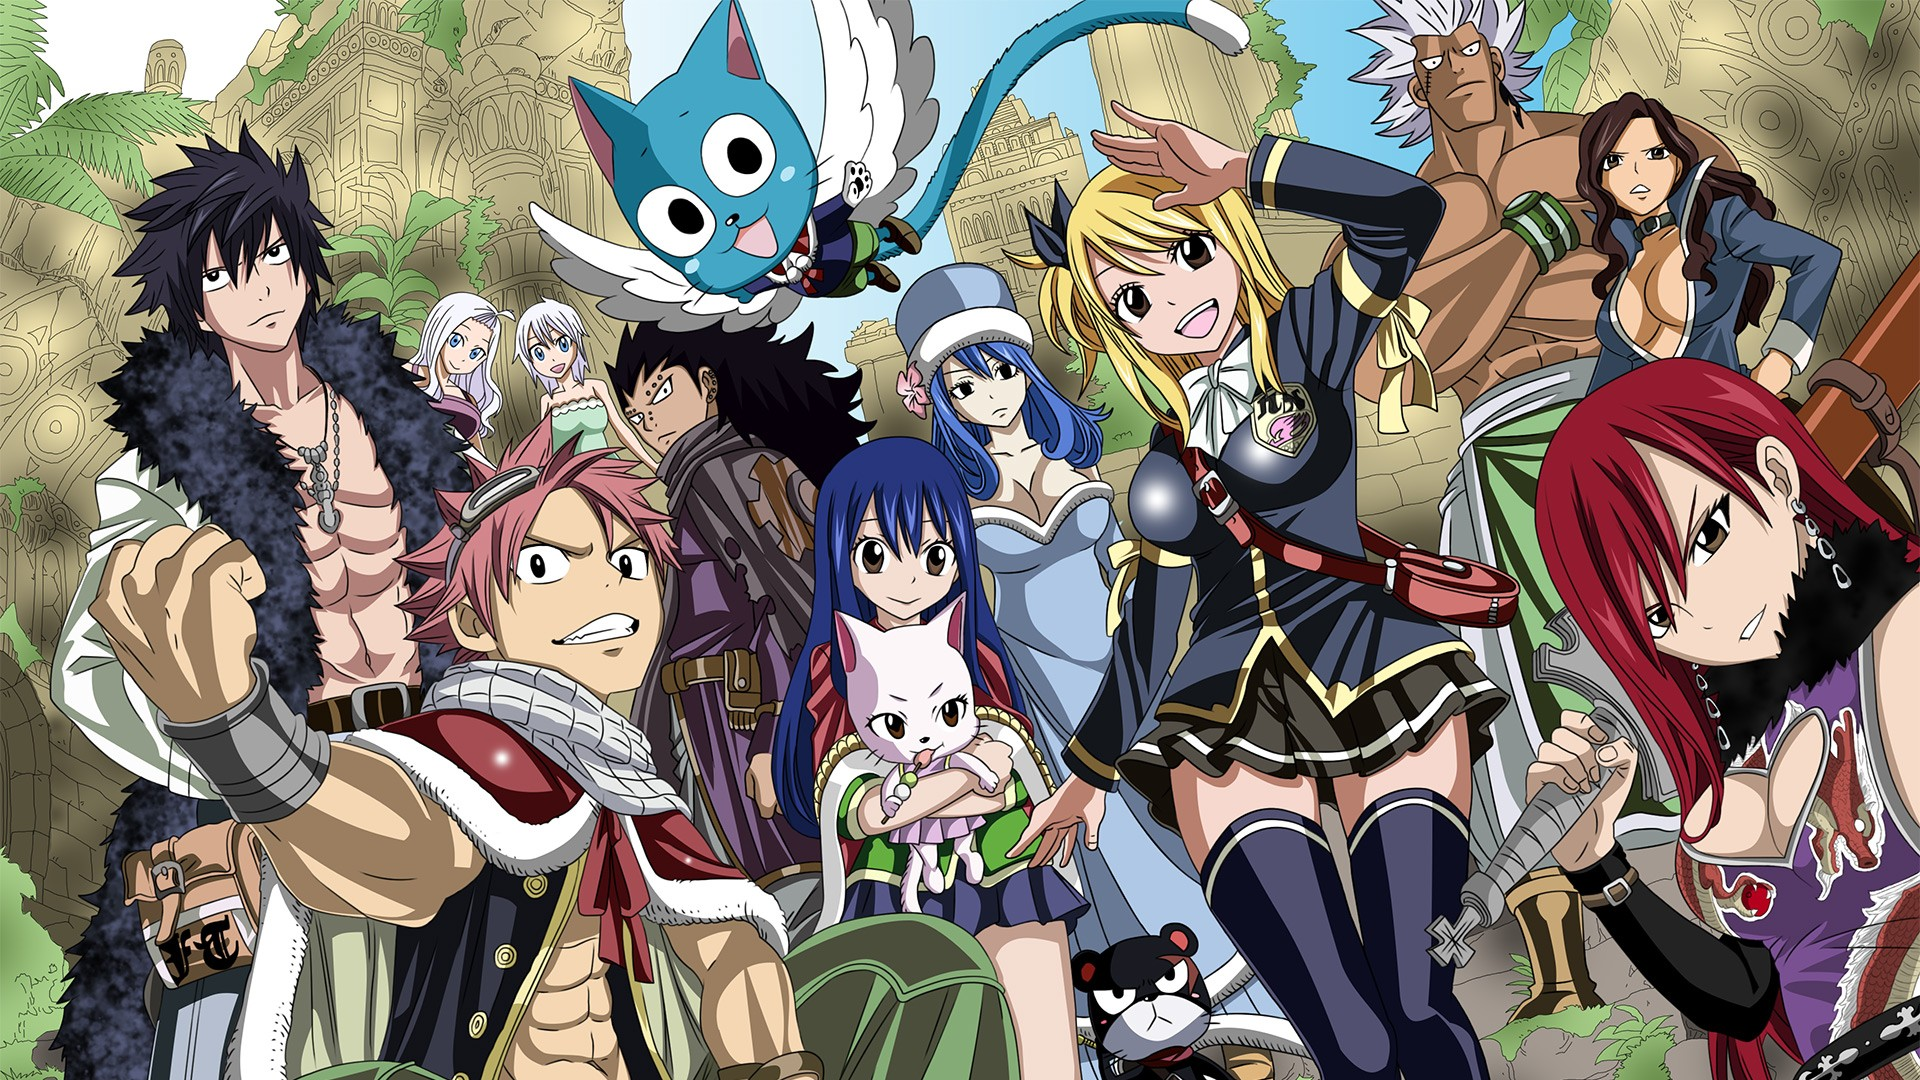 ''Fairy Tail''